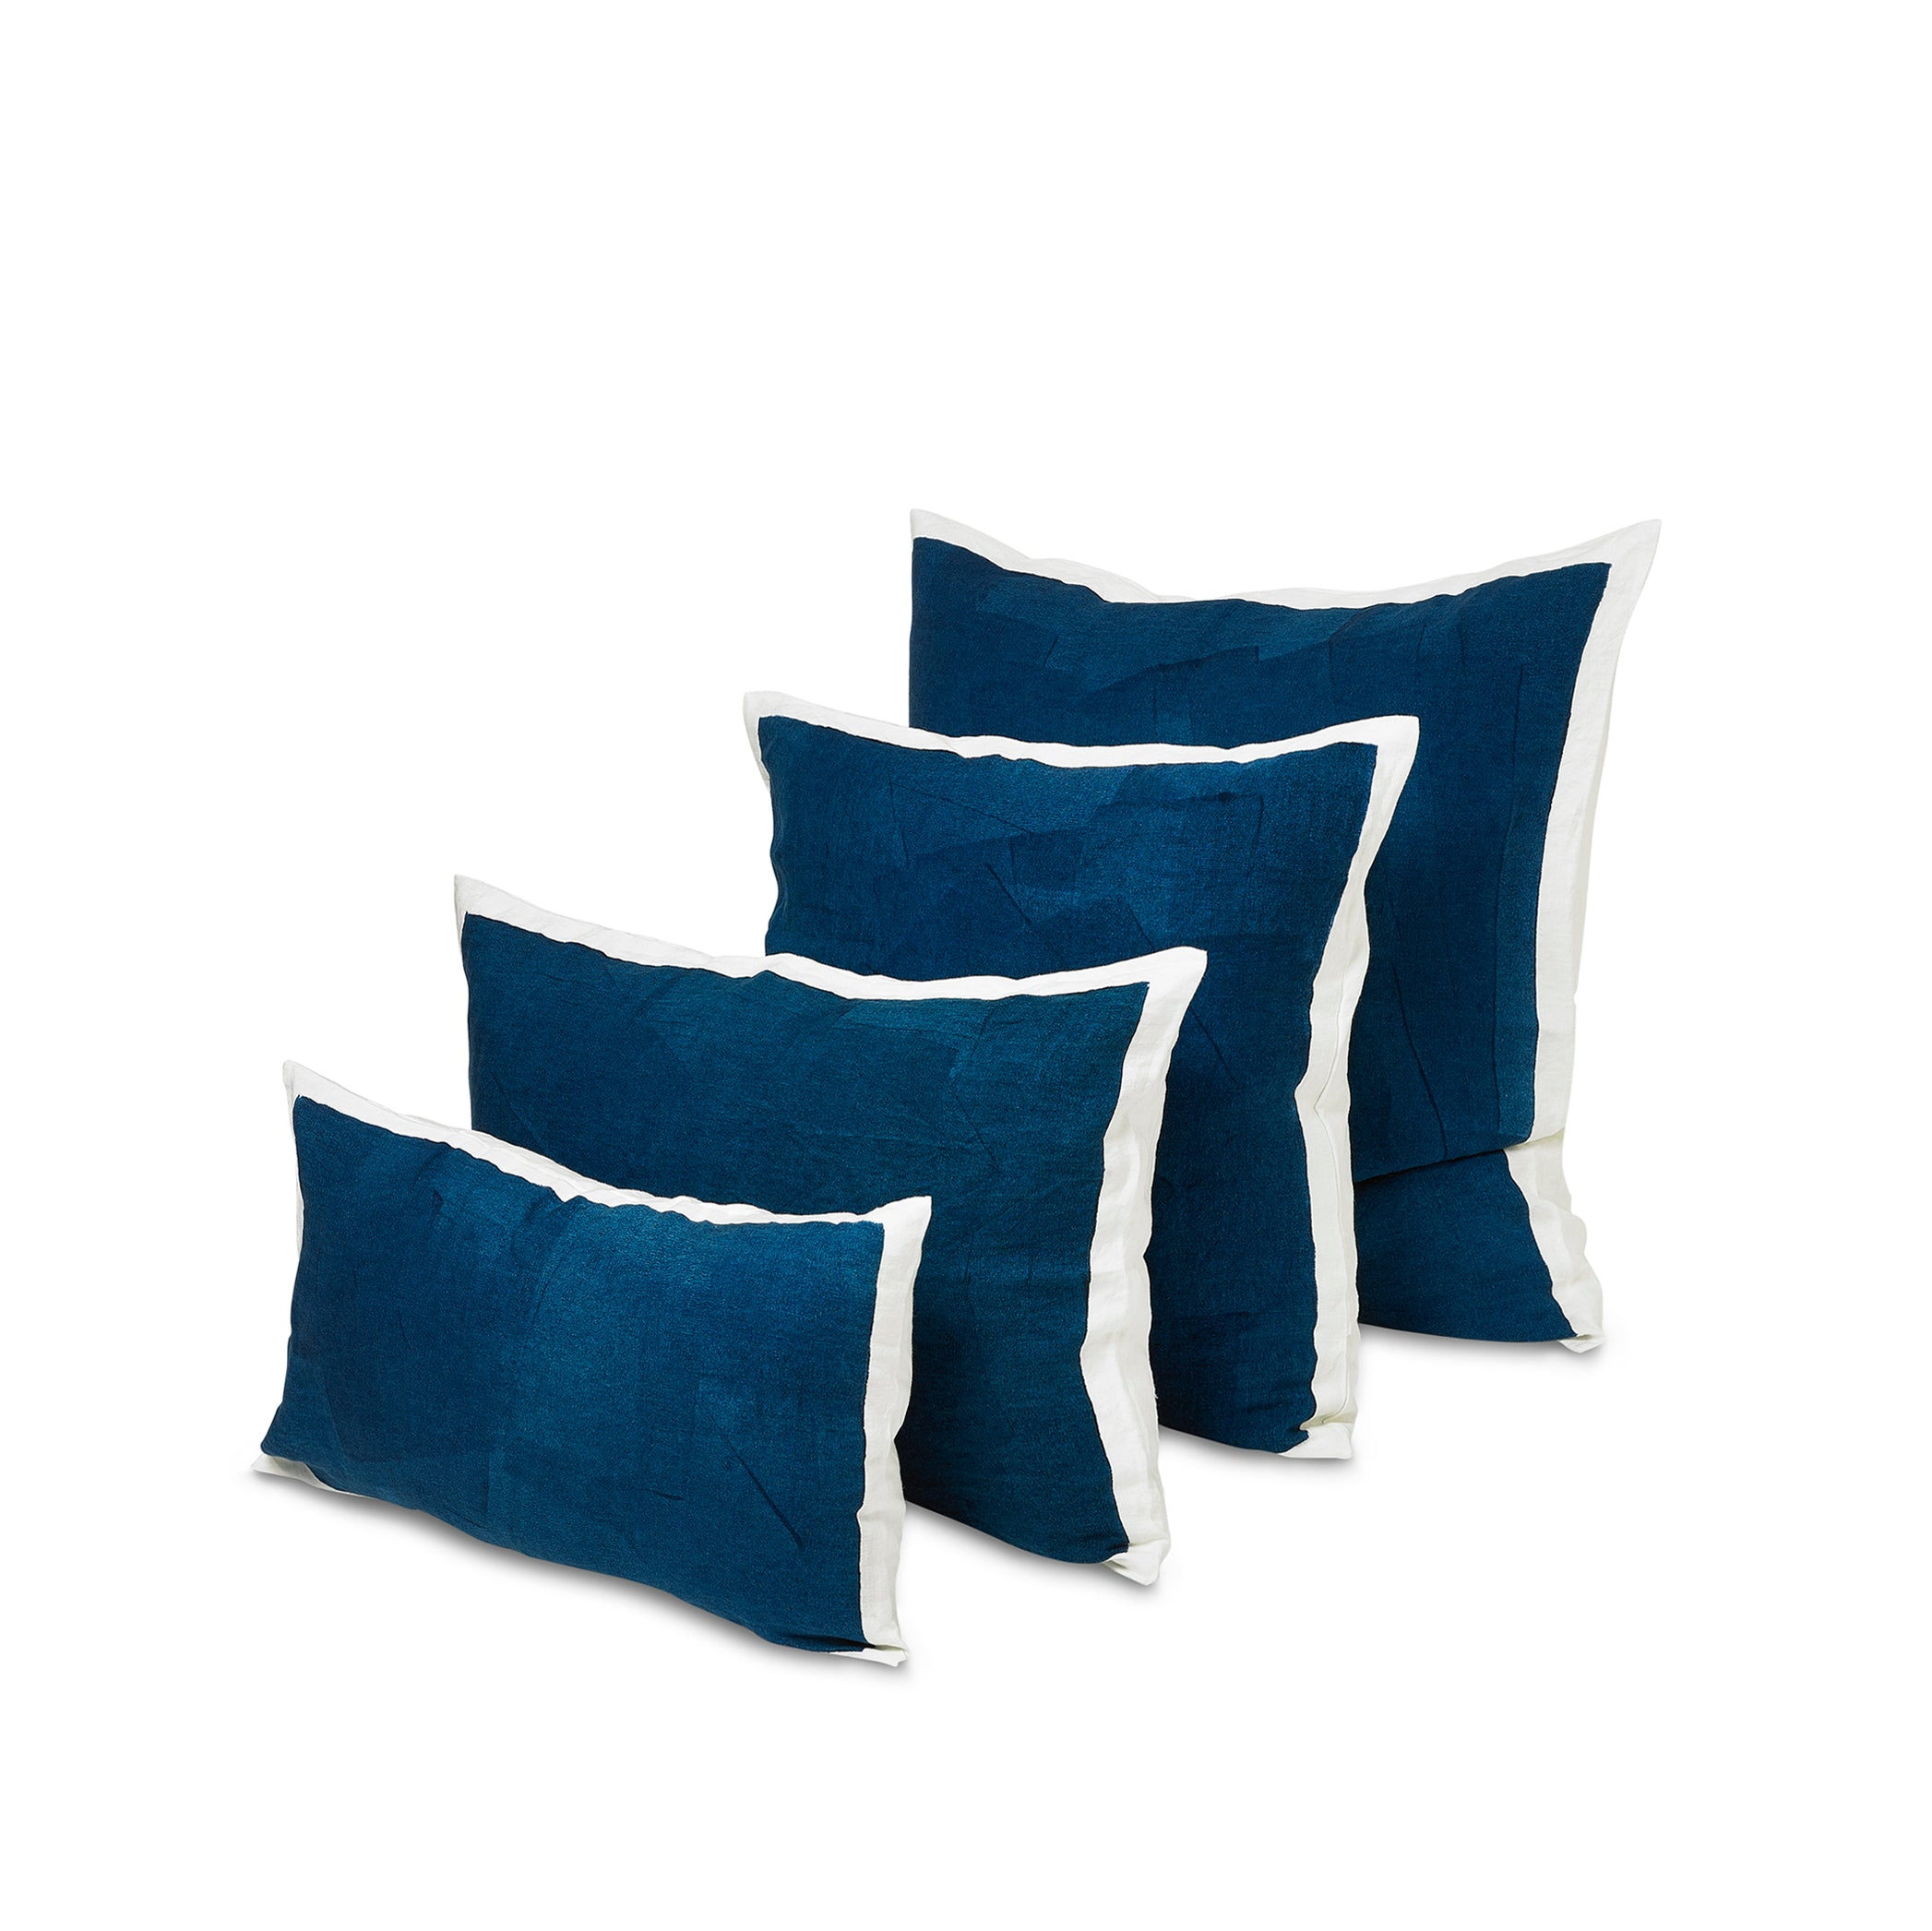 Hand Painted Linen Cushion Cover in Midnight Blue, 50cm x 30cm